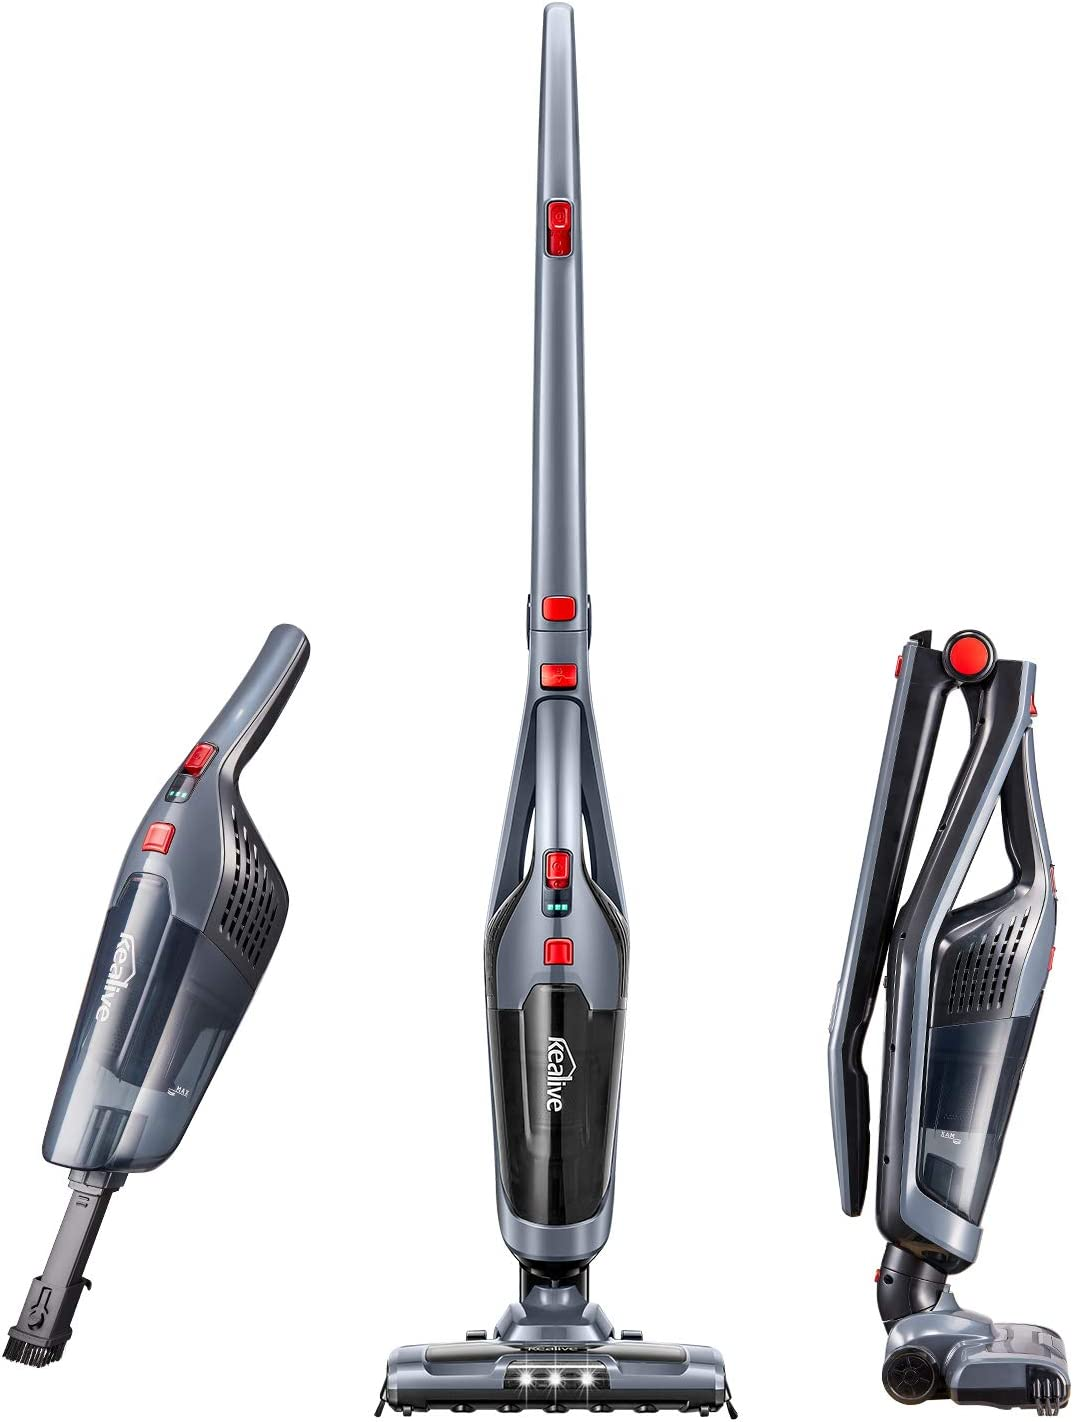 Cordless Vacuum, Kealive 8000 PA Stick Vacuum Cleaner, 2 in 1 Lightweight Rechargeable Bagless Stick and Handheld Vacuum with Wall Mount for Carpet Hardwood Floor Pet Hair and Corner Lighting, Black